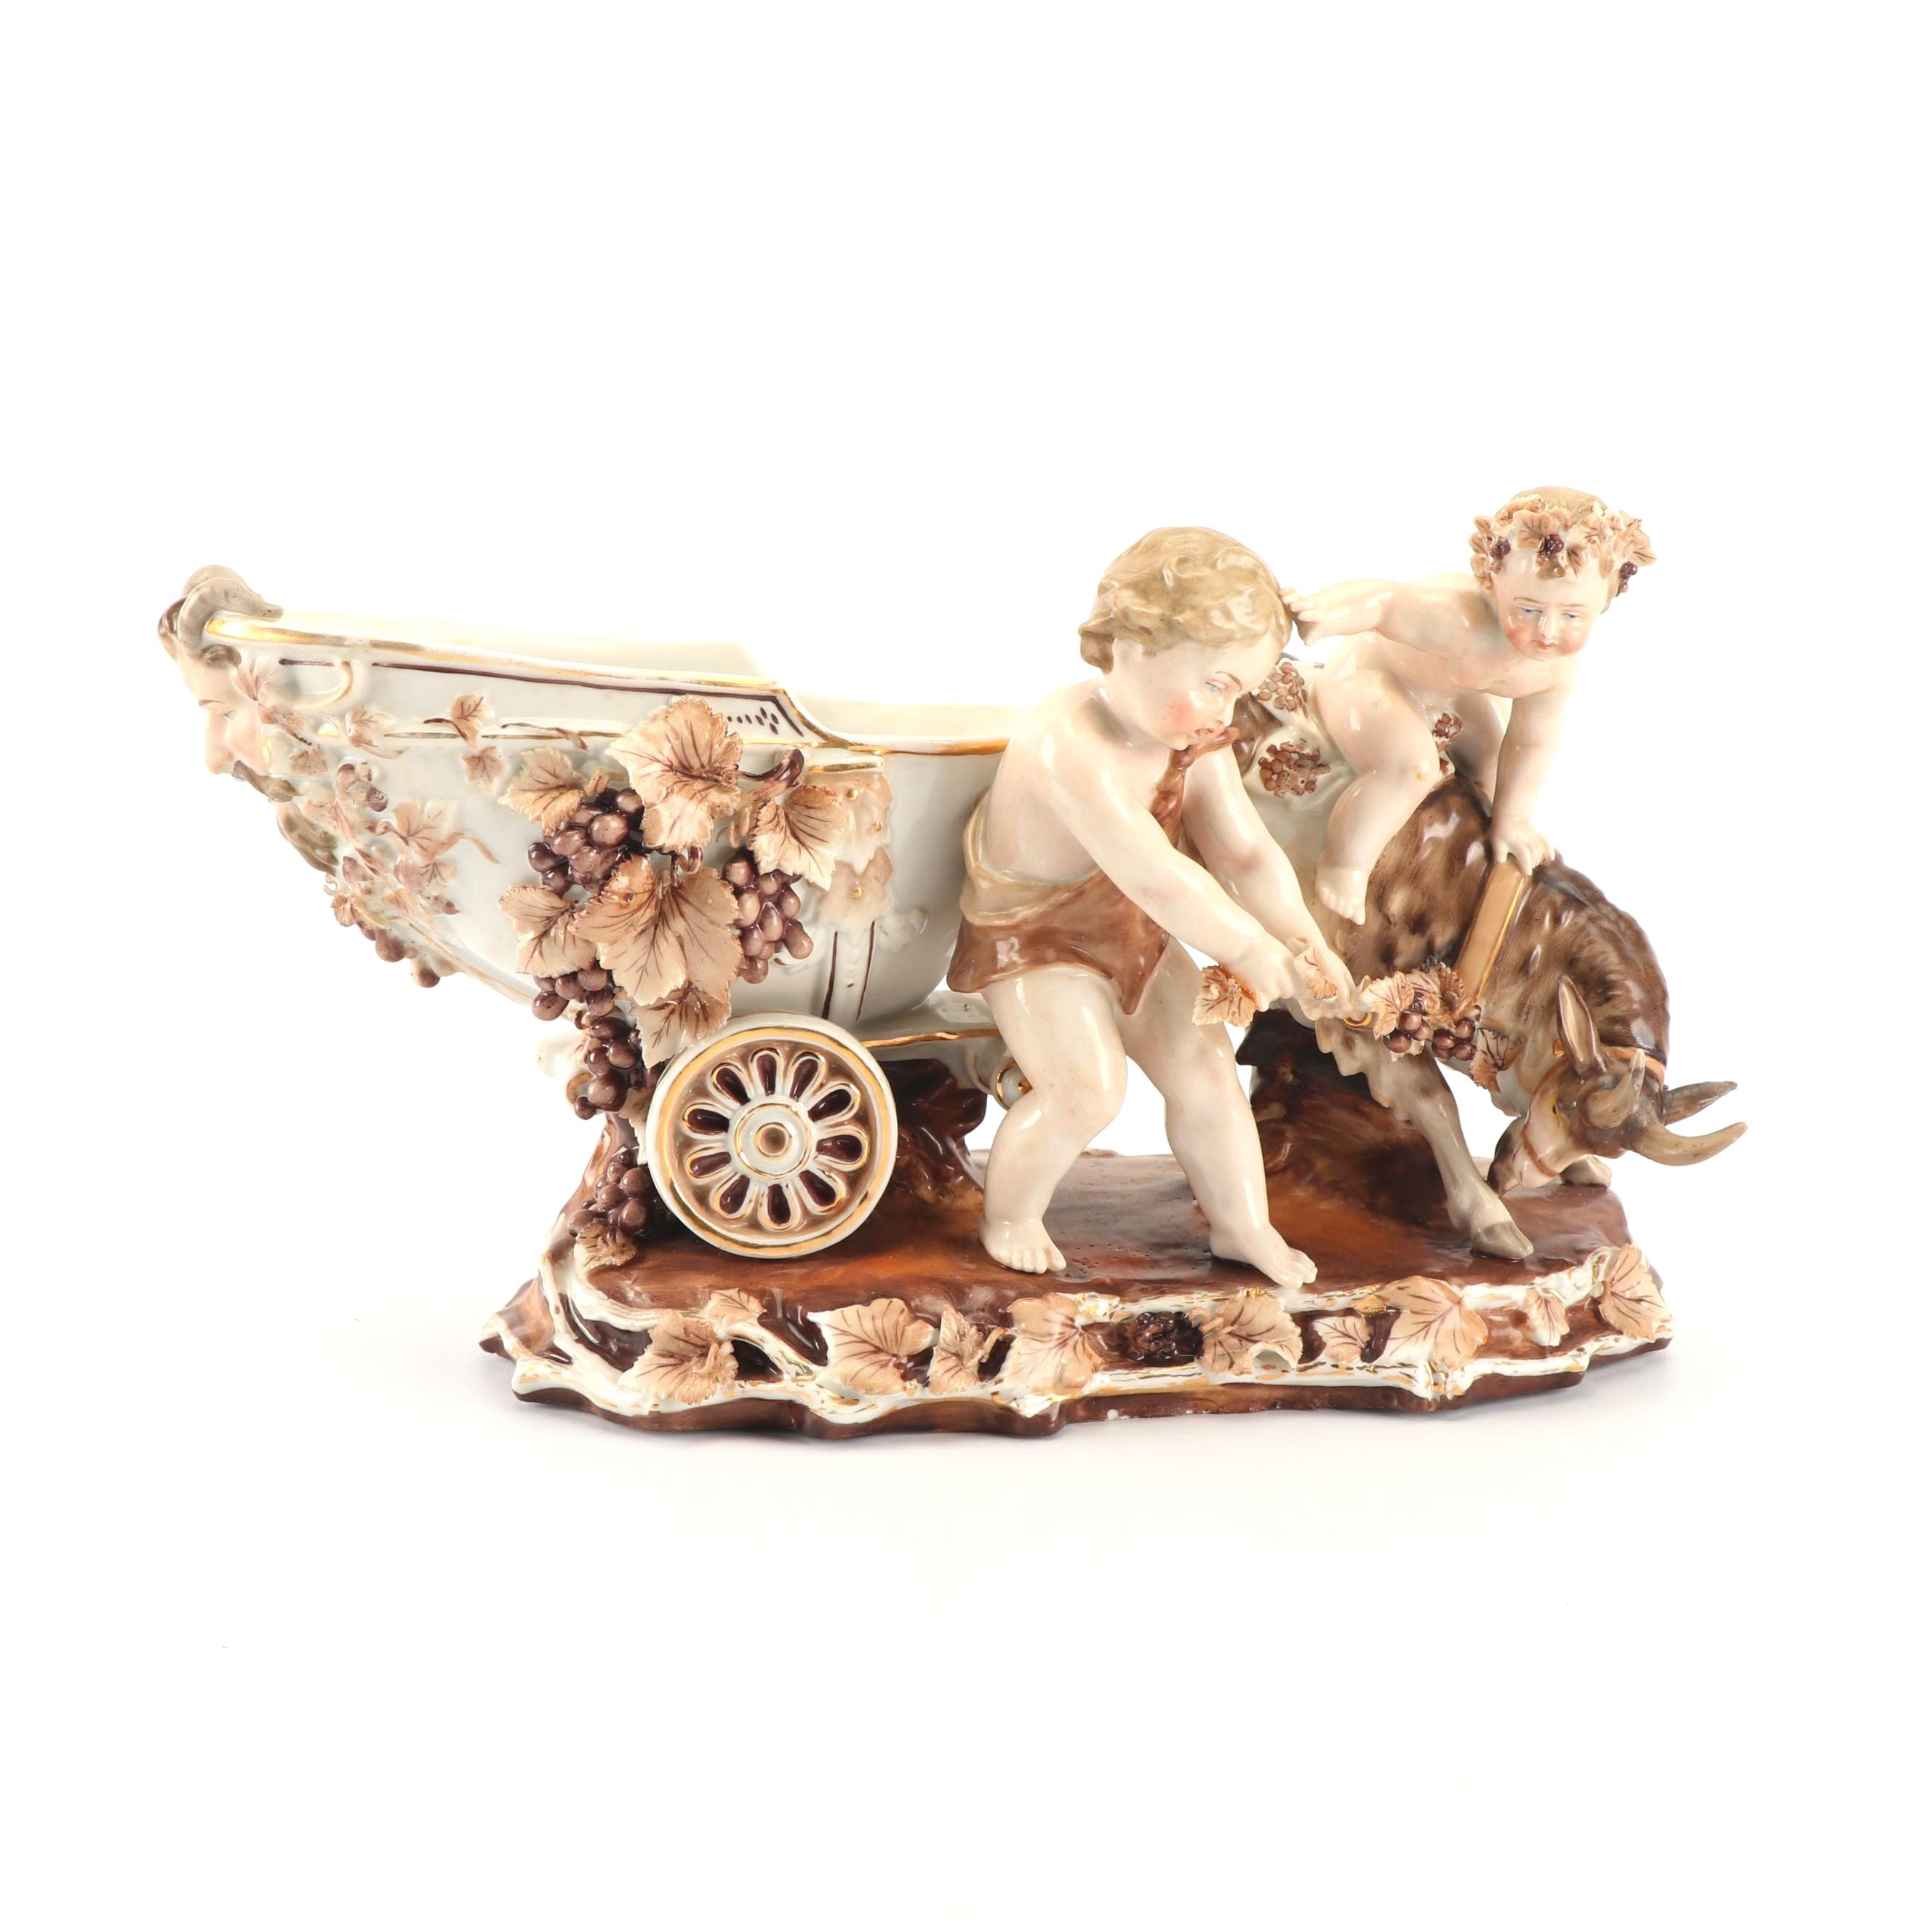 Bacchus Chariot and Goat Porcelain Figurine Attributed to Meissen circa 1840